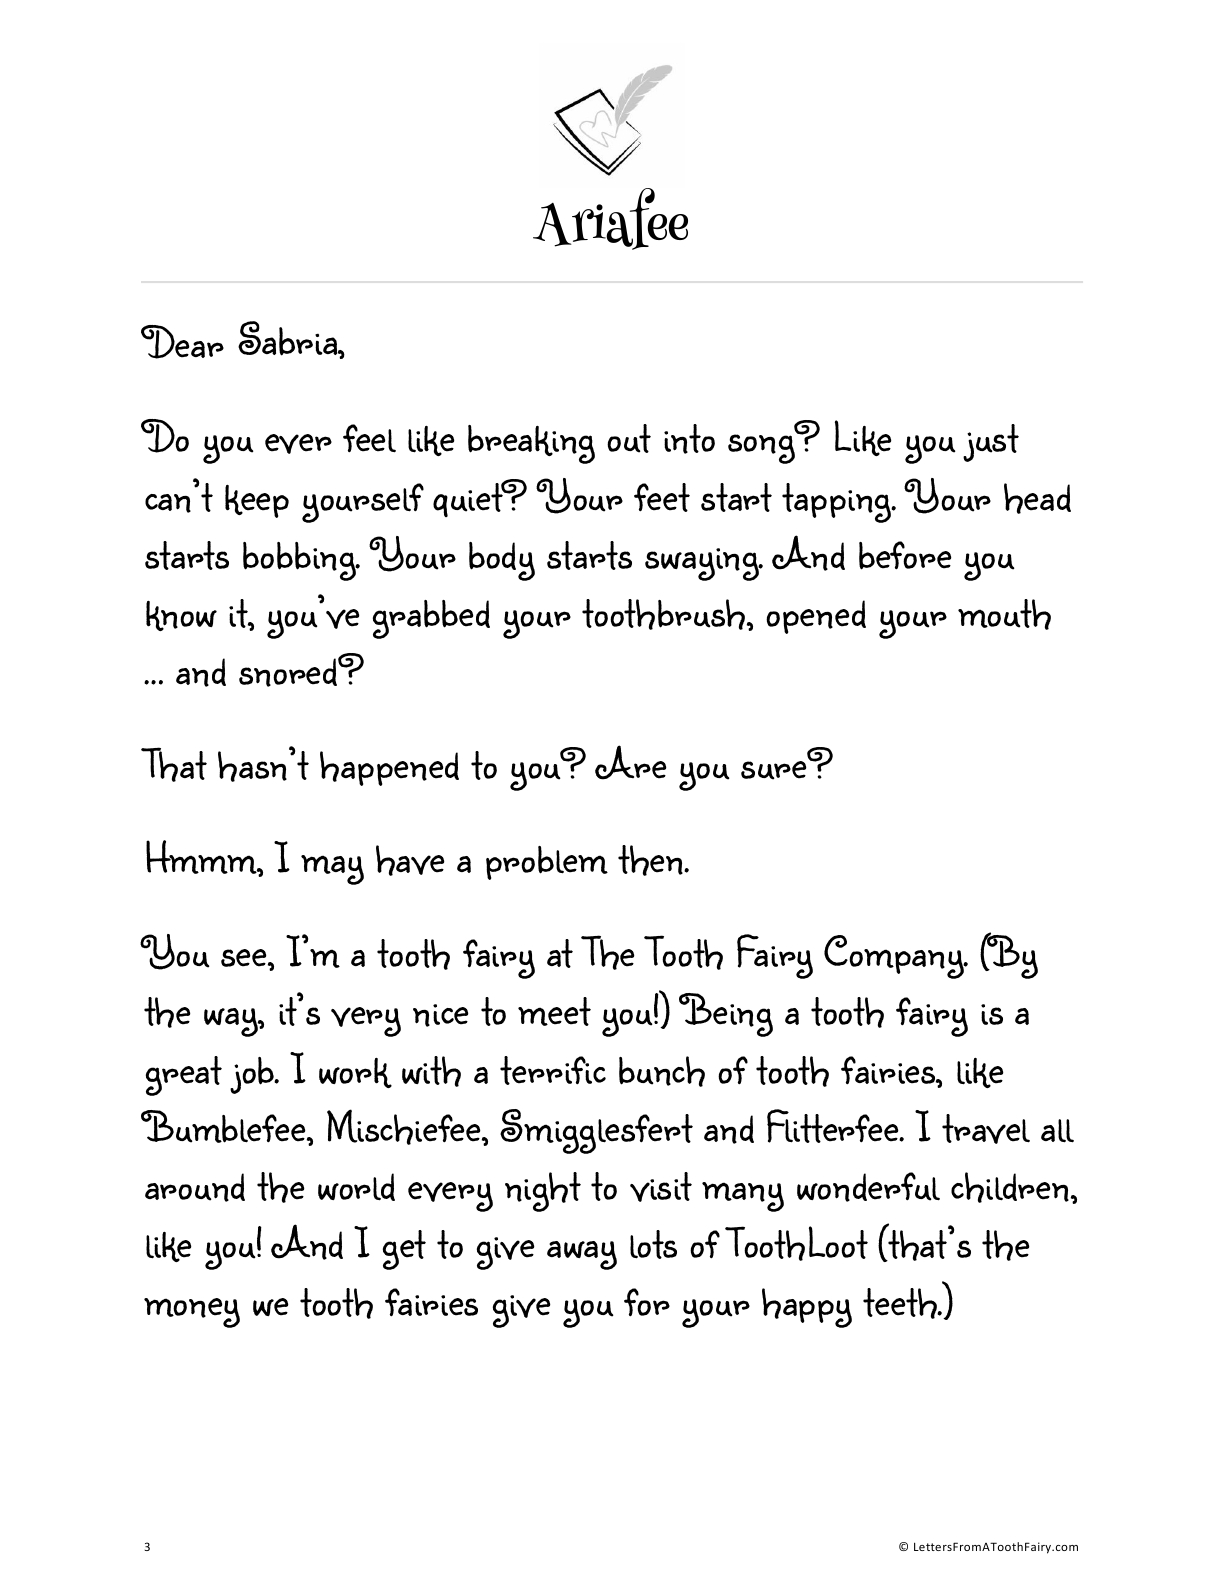 Free Tooth Fairy Letters — Letters from a Tooth Fairy With Free Tooth Fairy Certificate Template